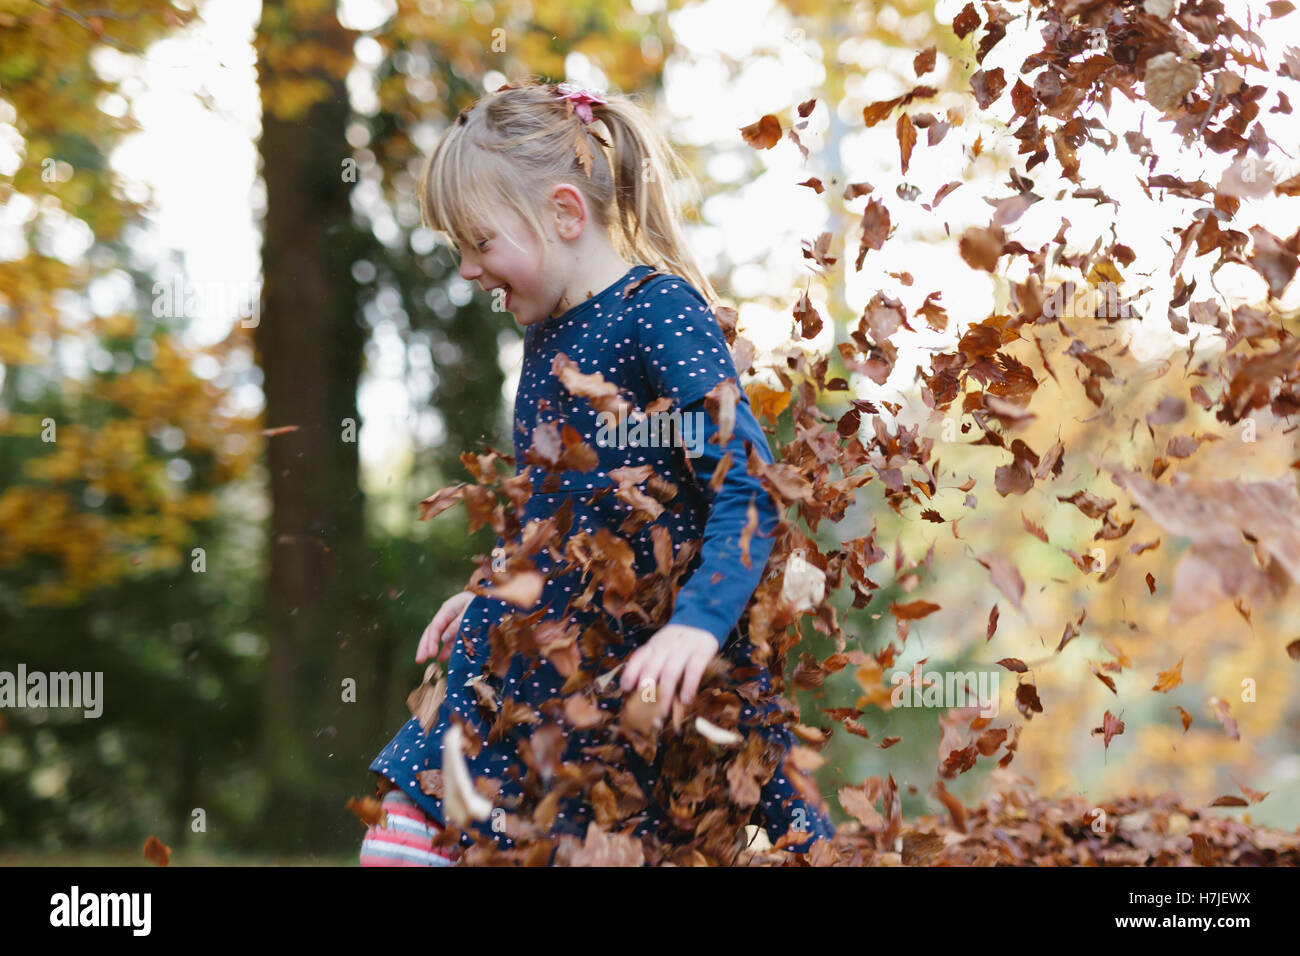 Happy autumn. Little girl playing in dry leaves pile in autumn park. - Stock Image